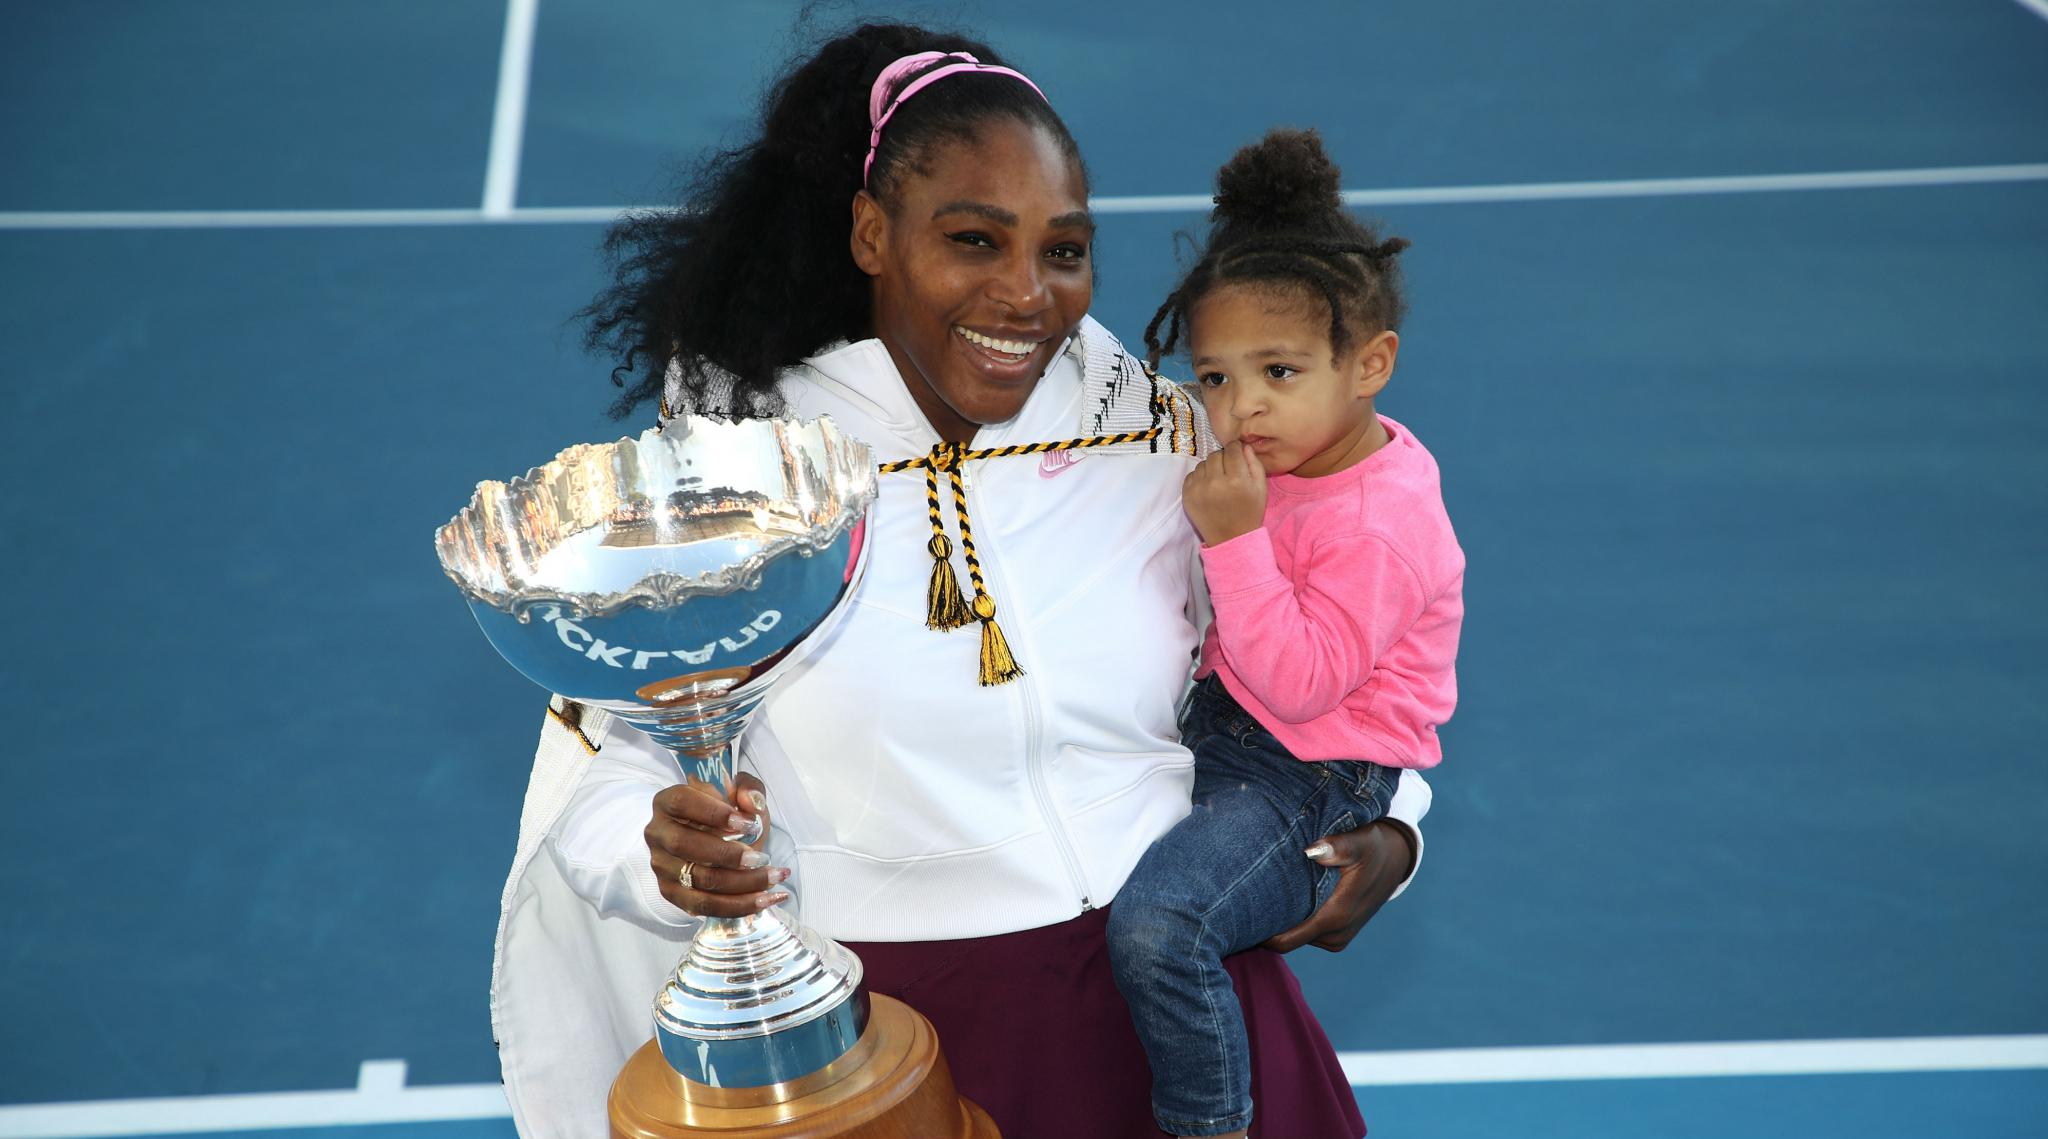 Serena Williams Ends 3-Year Title Drought With WTA Auckland Classic 2020 Victory